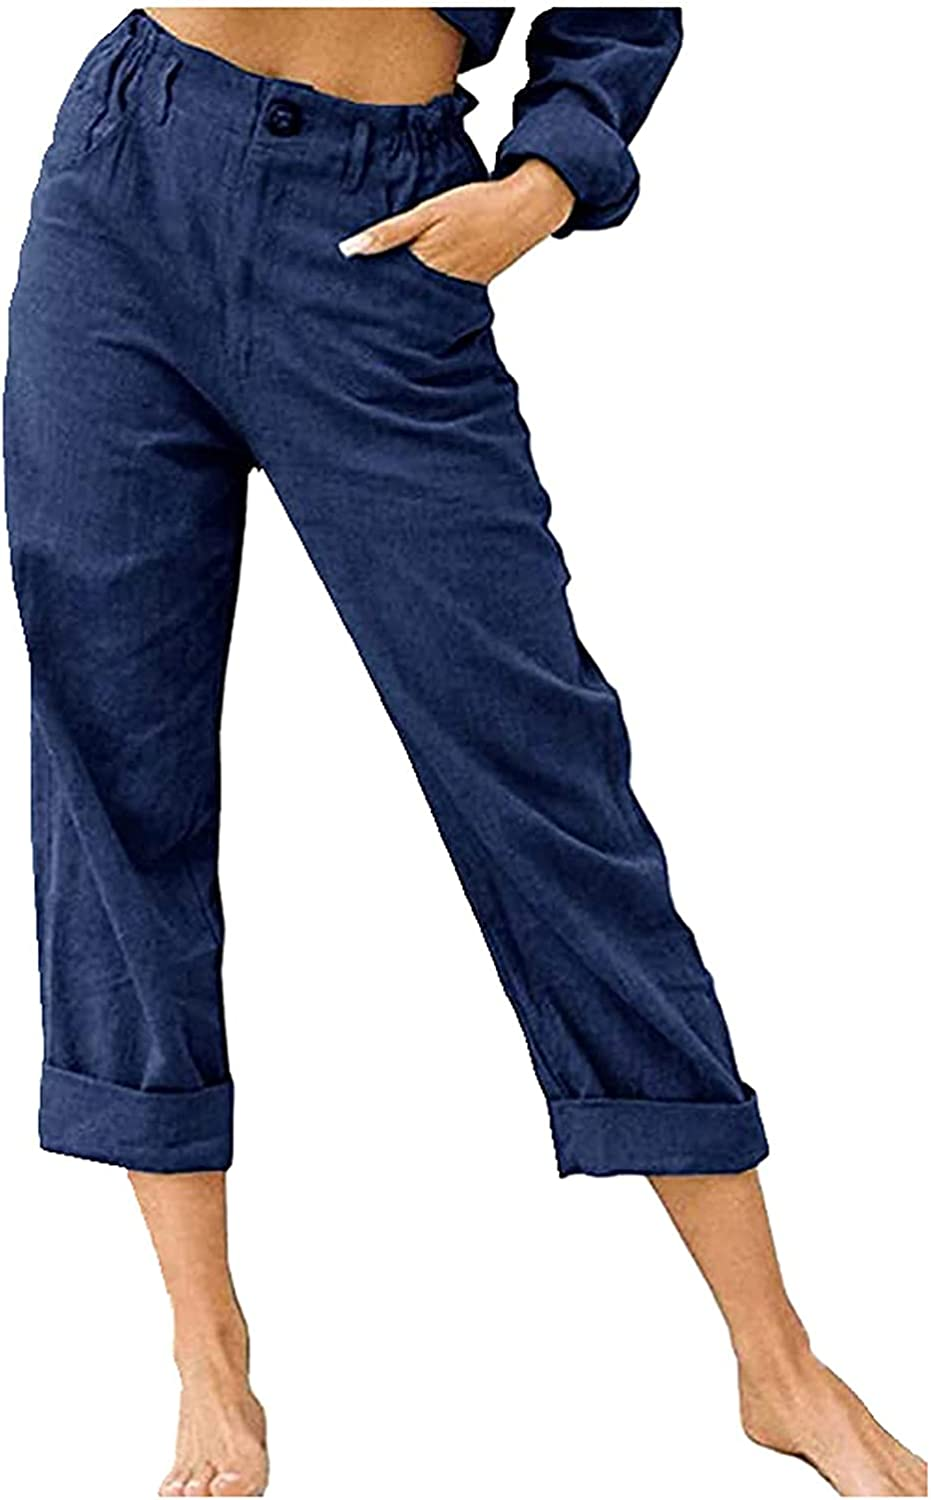 Fllaees High Waist Wide Leg Pants for Women Summer Business Casual Crop Dress Pants Stretch Pull On Capris